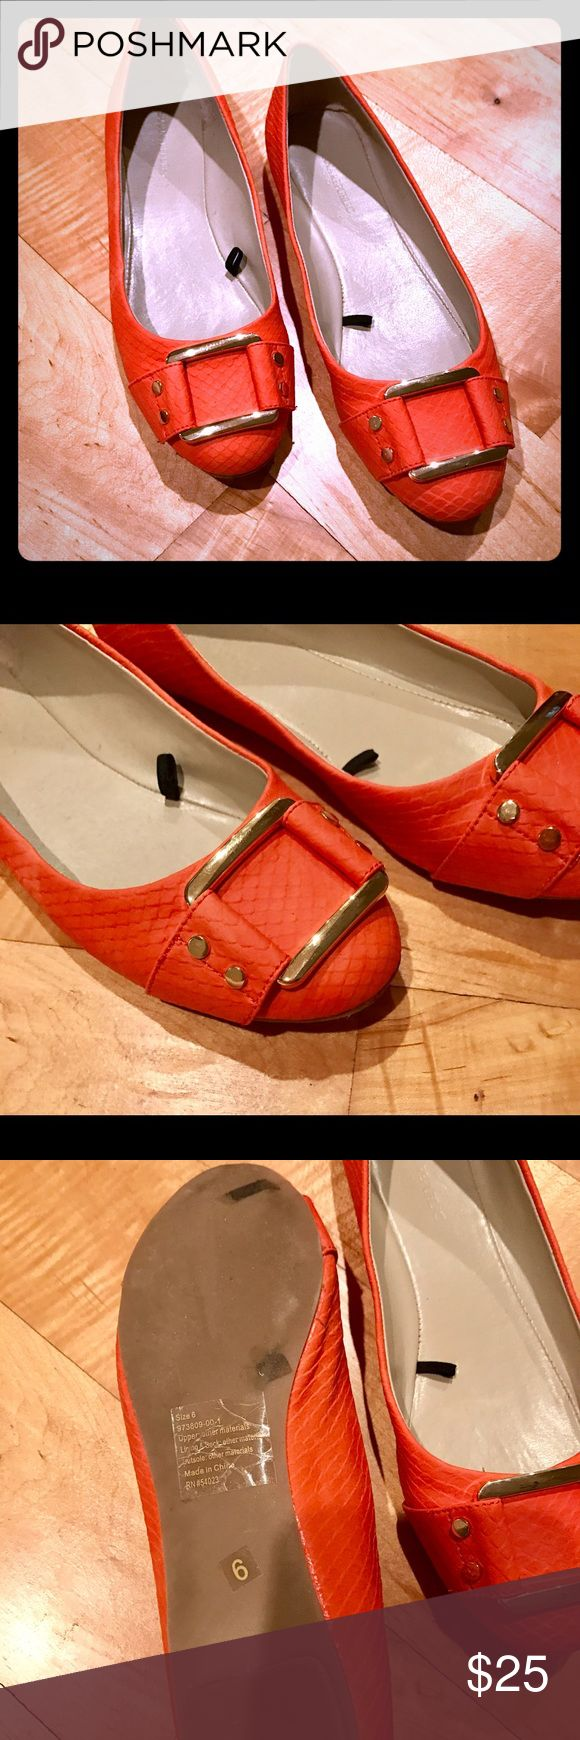 ✨🆕✨Banana Republic Orange Flats w/Gold Buckle ✨🆕✨Banana Republic Orange Flats w/Gold Buckle. Worn only once; like brand new. Coming from smoke free home. 🚫trades. Banana Republic Shoes Flats & Loafers